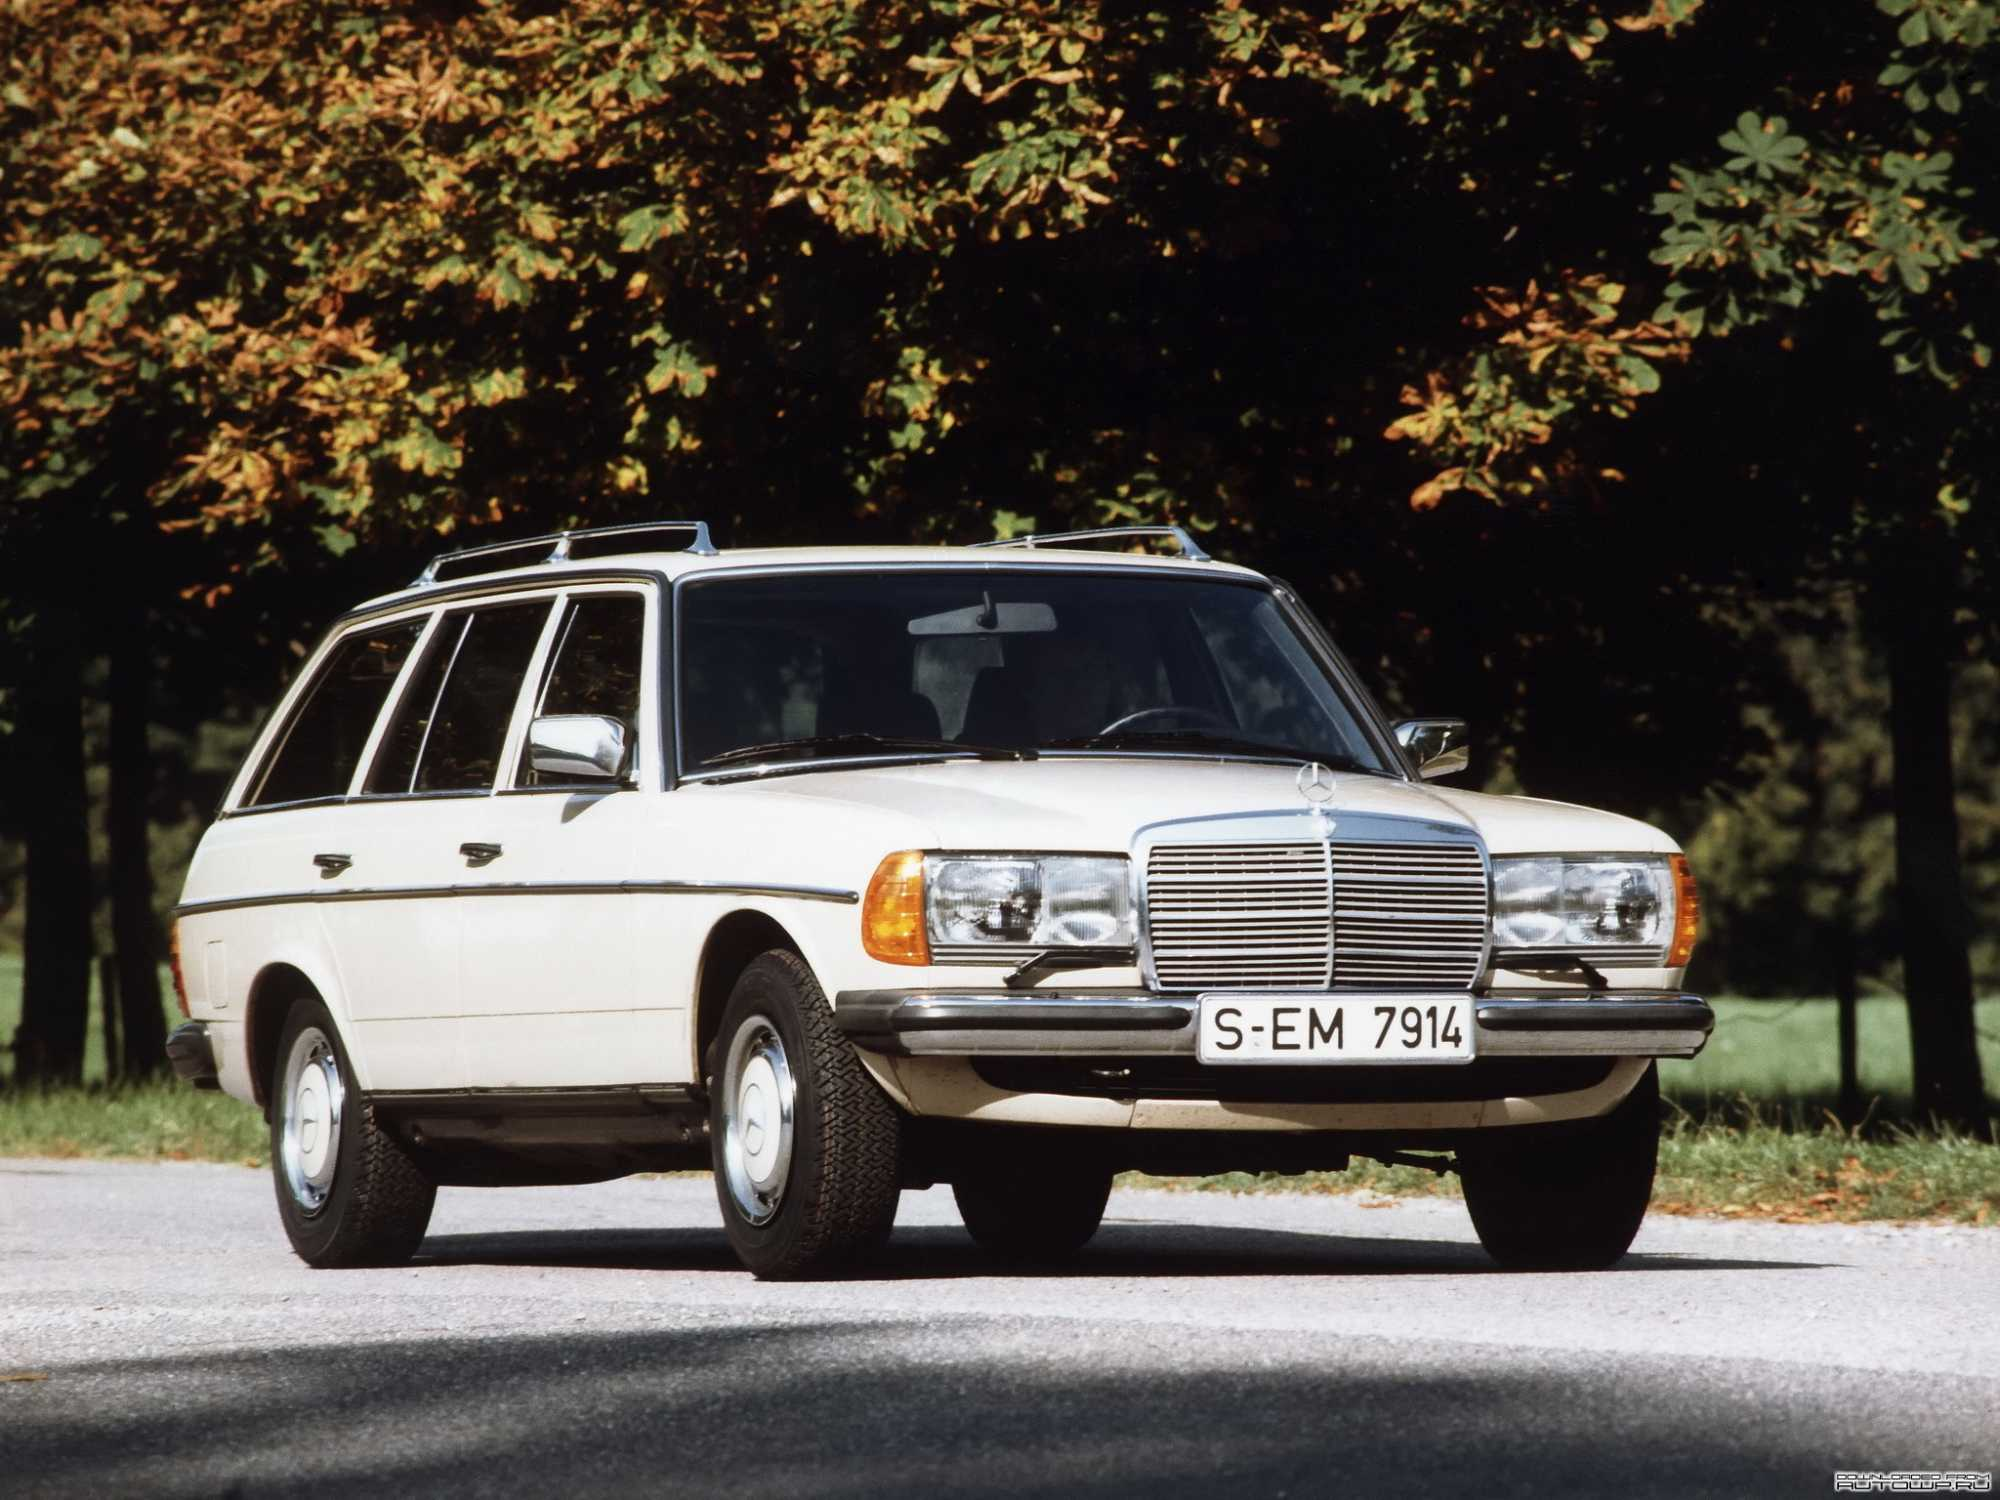 Mercedes W123 Interieur Te Koop The S123 The First Estate Car Developed By Mercedes Benz Auto